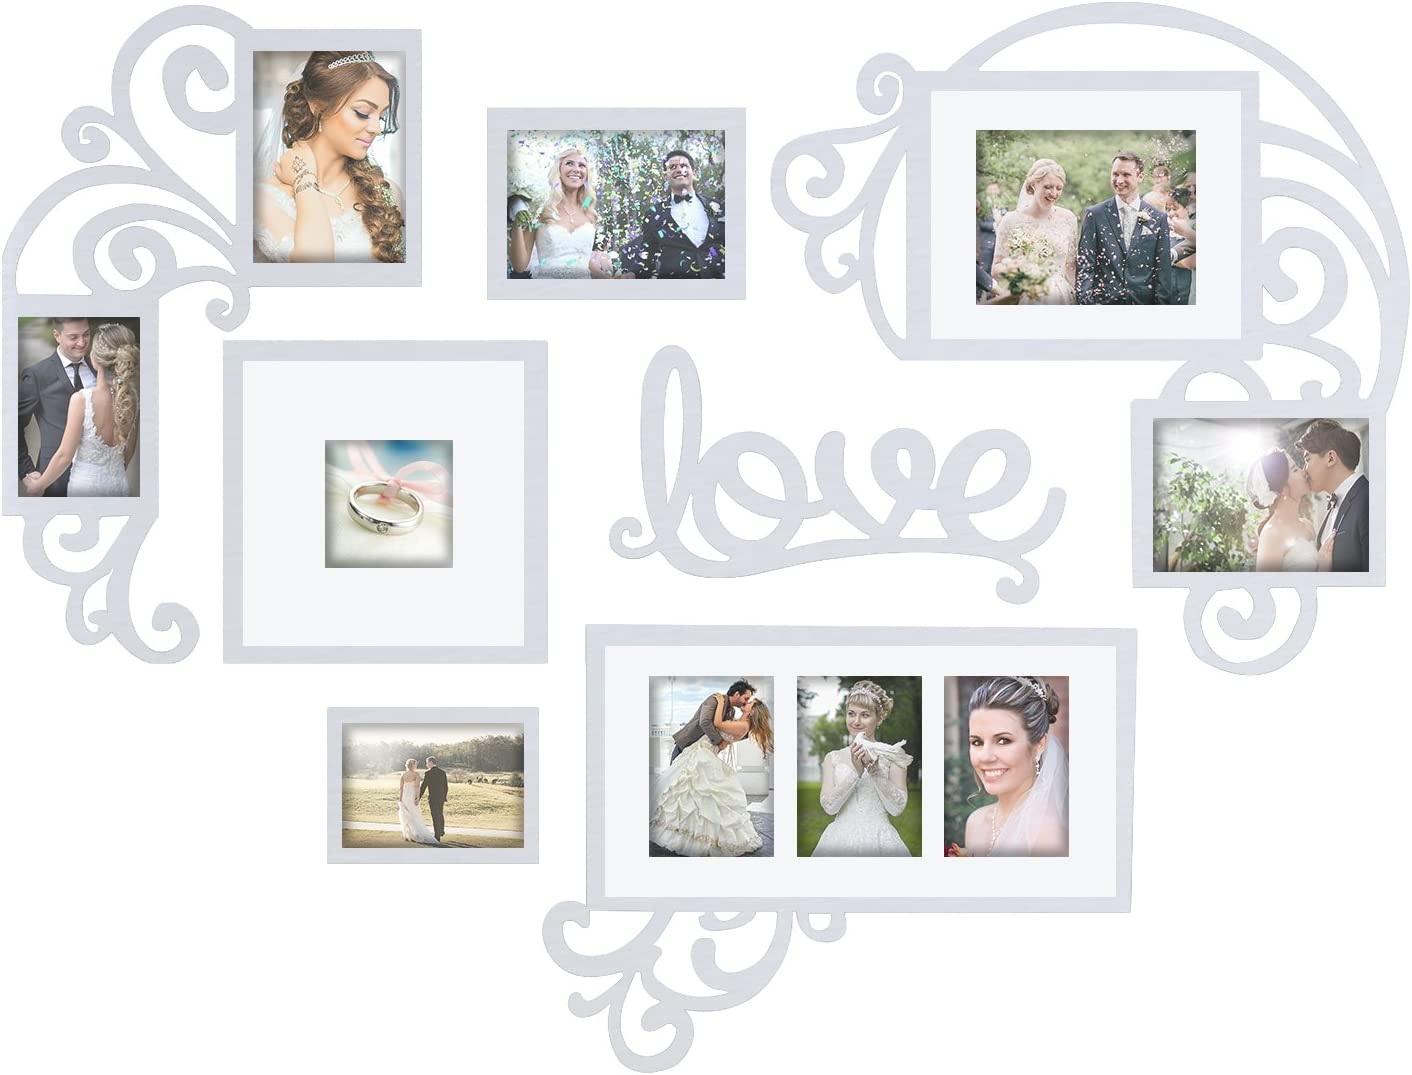 Jerry & Maggie - Photo Frame   Plaque College Frame - Valentine Wall Decoration Combination - White PVC Picture Frame Selfie Gallery Collage W Wall Hanging Mounting Design   Love Heart Shape